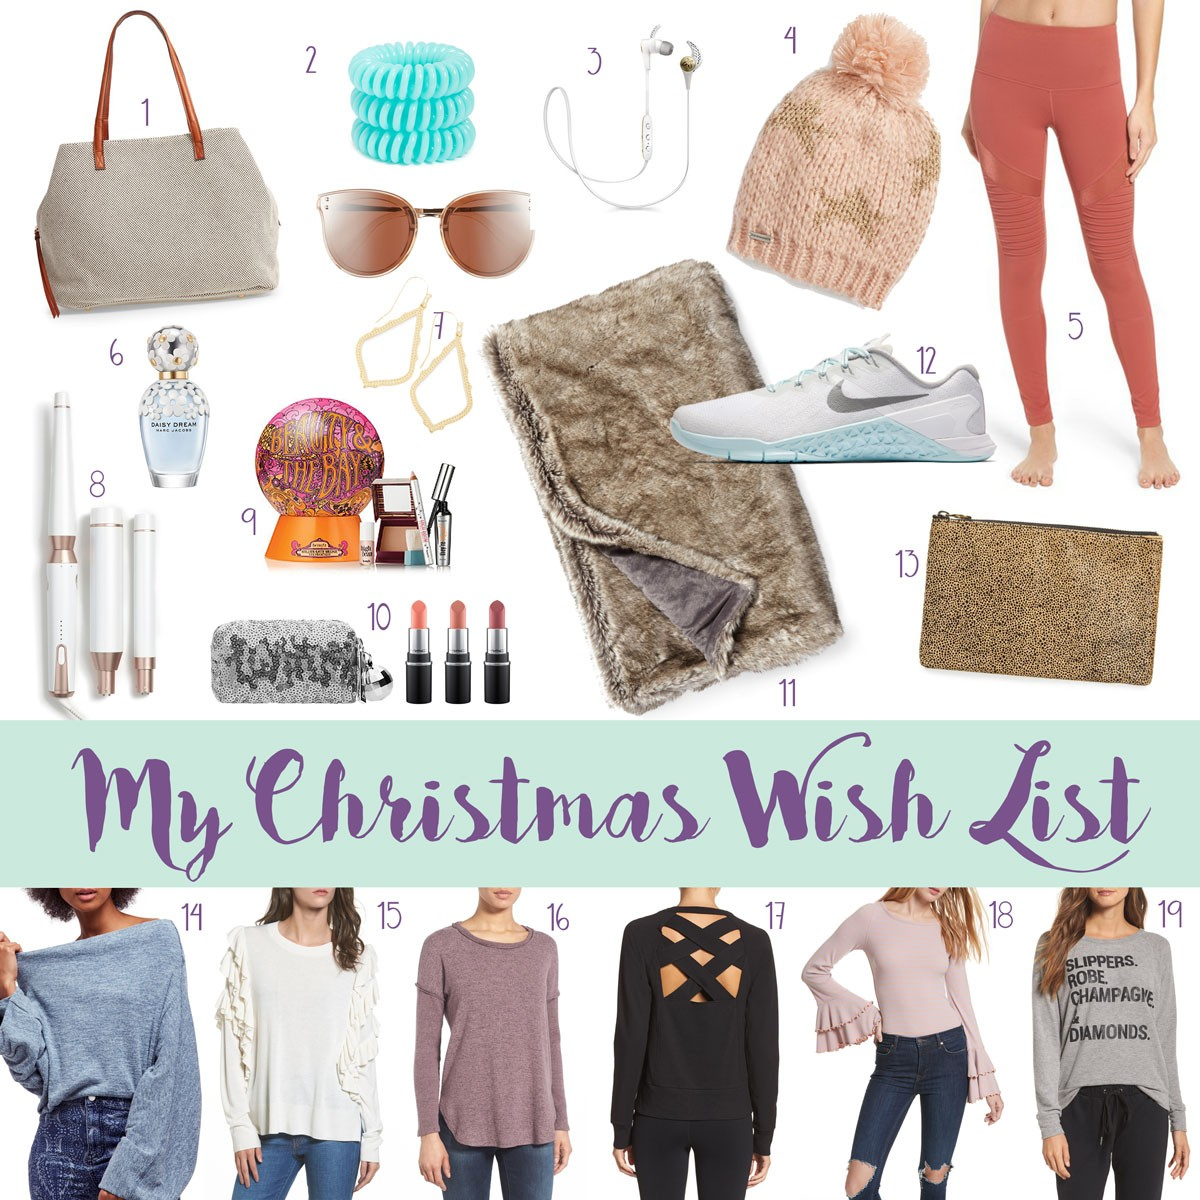 wish list graphic